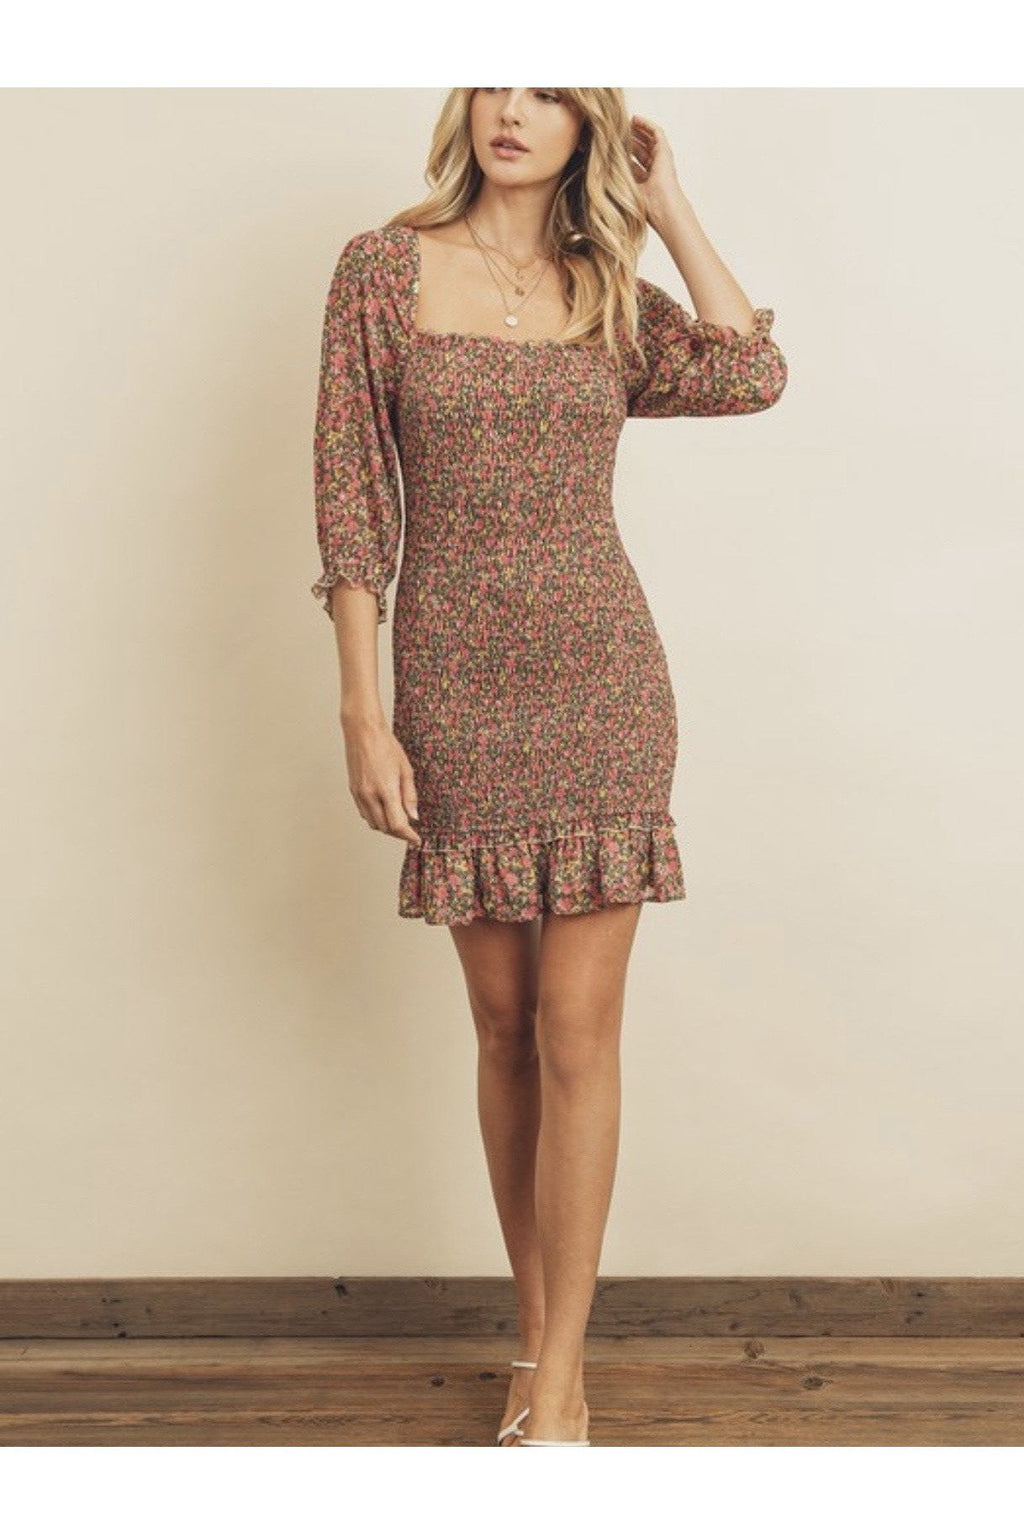 Blossom Shirred Mini Dress $58